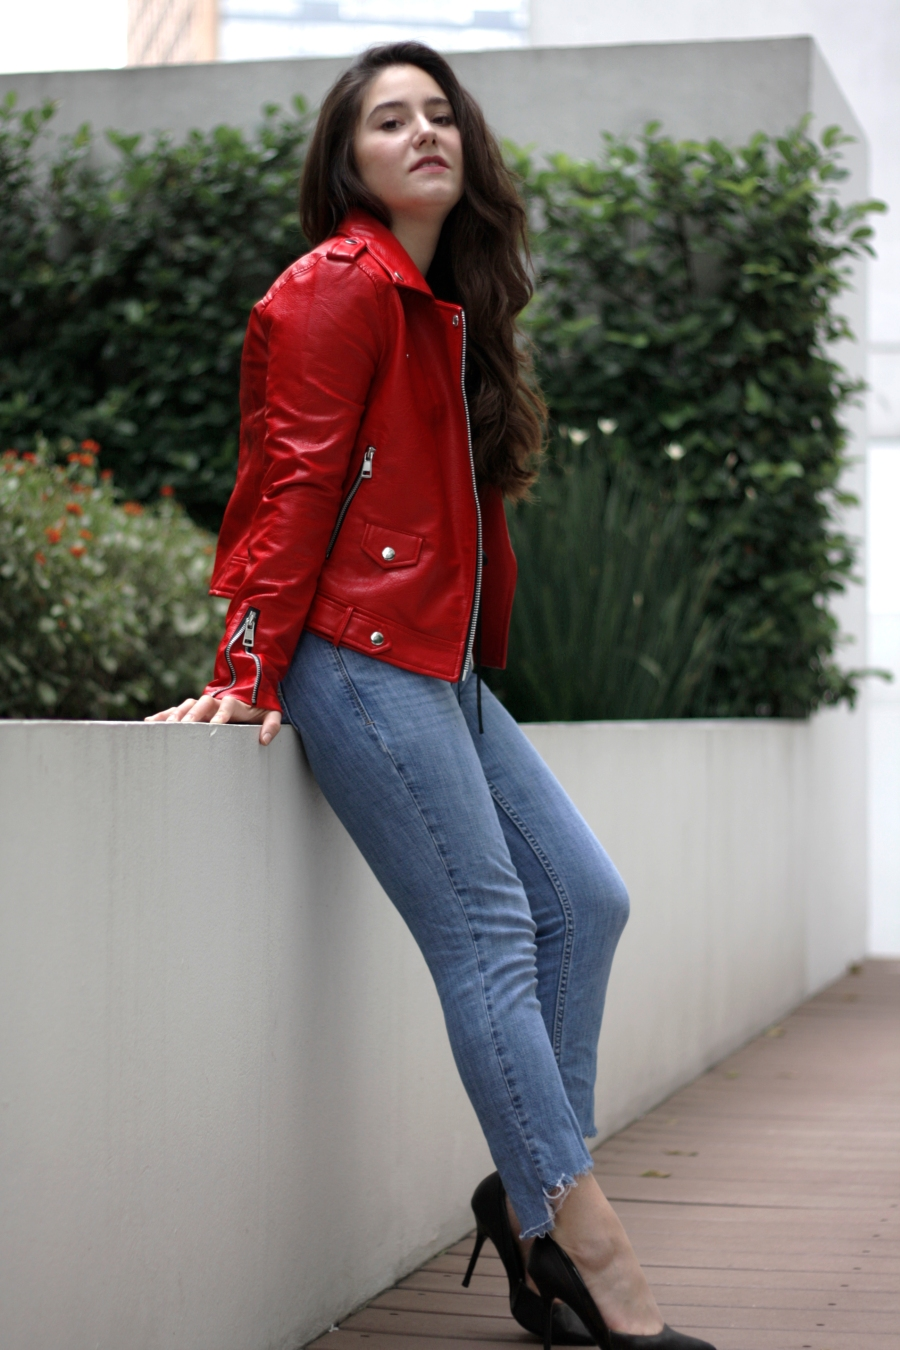 RED-JACKET-ATUENDO29-8